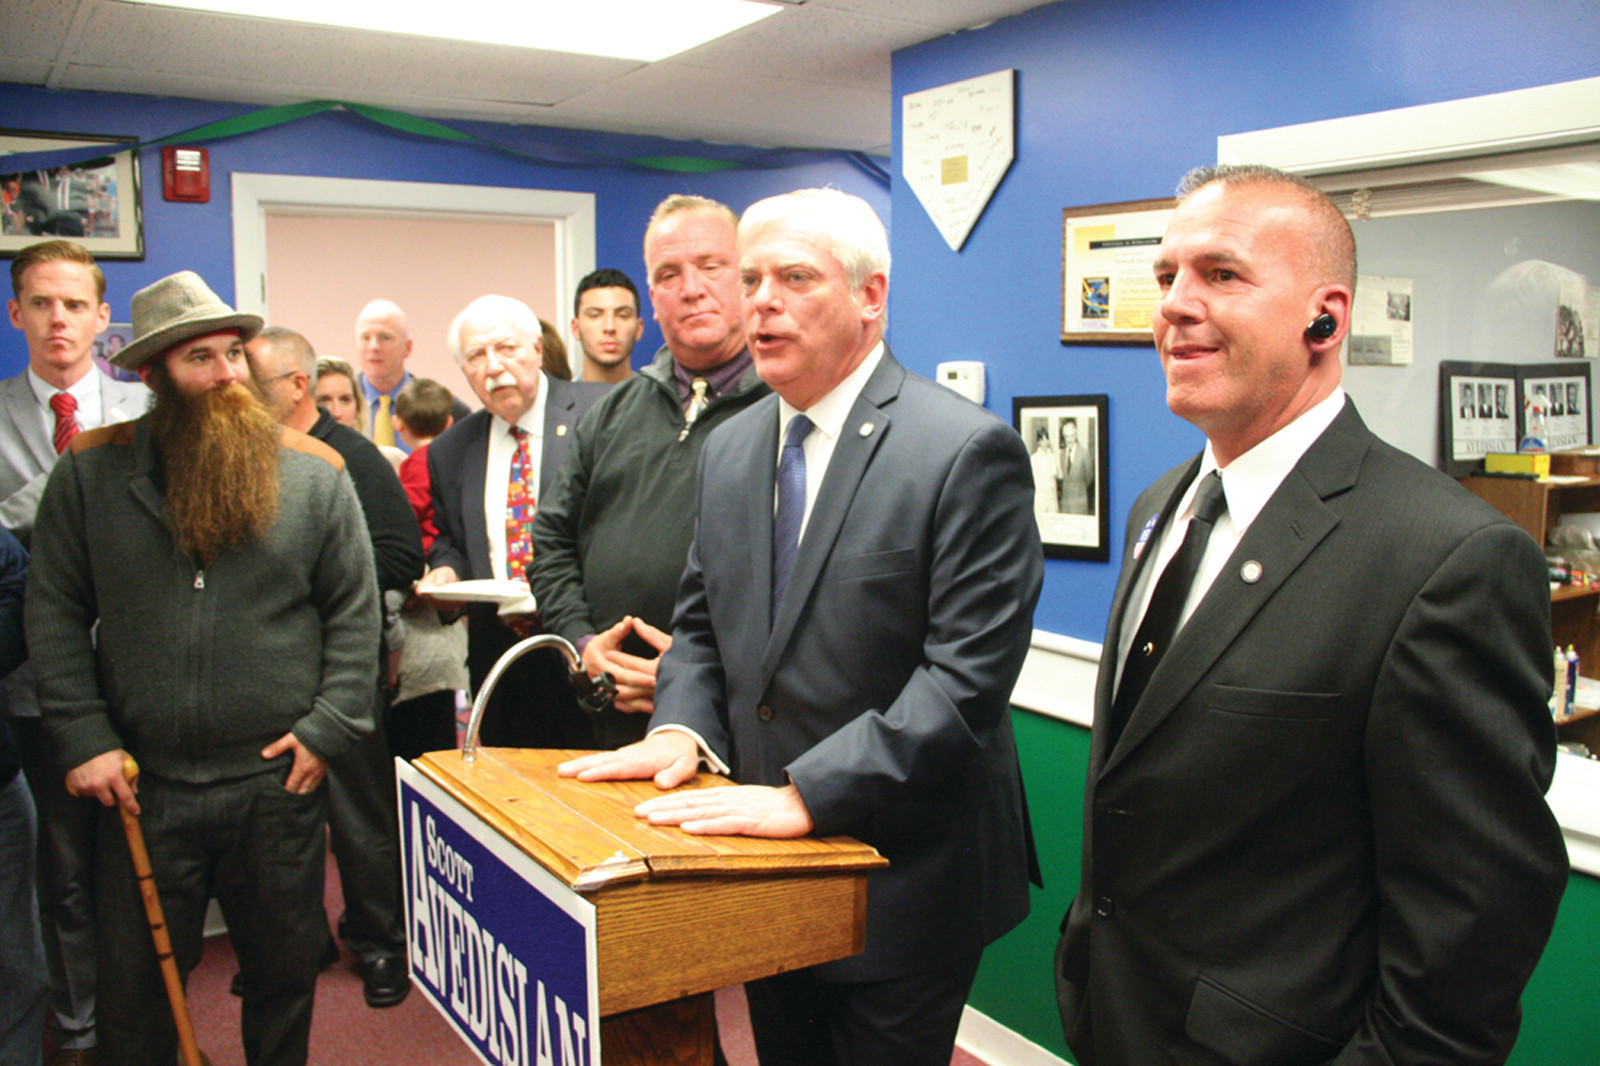 APPLAUDING CITY WORKERS: In his victory speech, Mayor Scott Avedisian recognized city workers for their efforts in serving the citizens of Warwick. He is flanked here by Ward 2 GOP candidate John Silvaggio, Ward 1 candidate Richard Cascella, and House District 21 candidate Mike Penta.